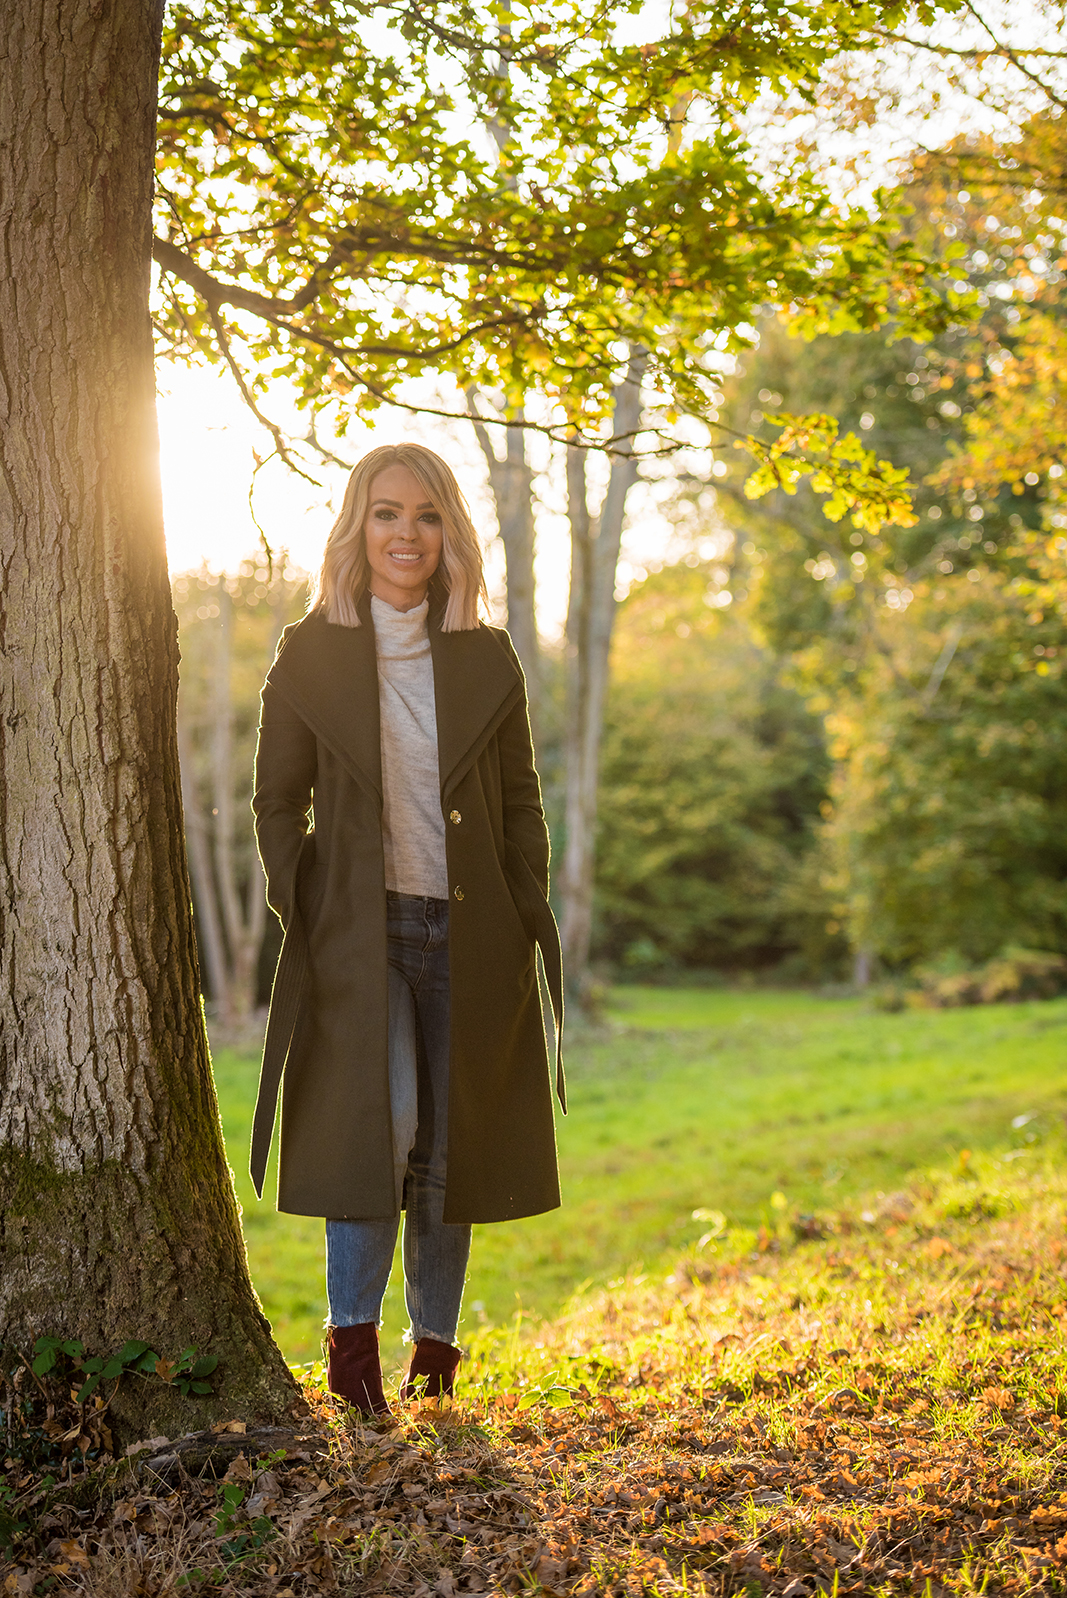 katie piper standing in a park